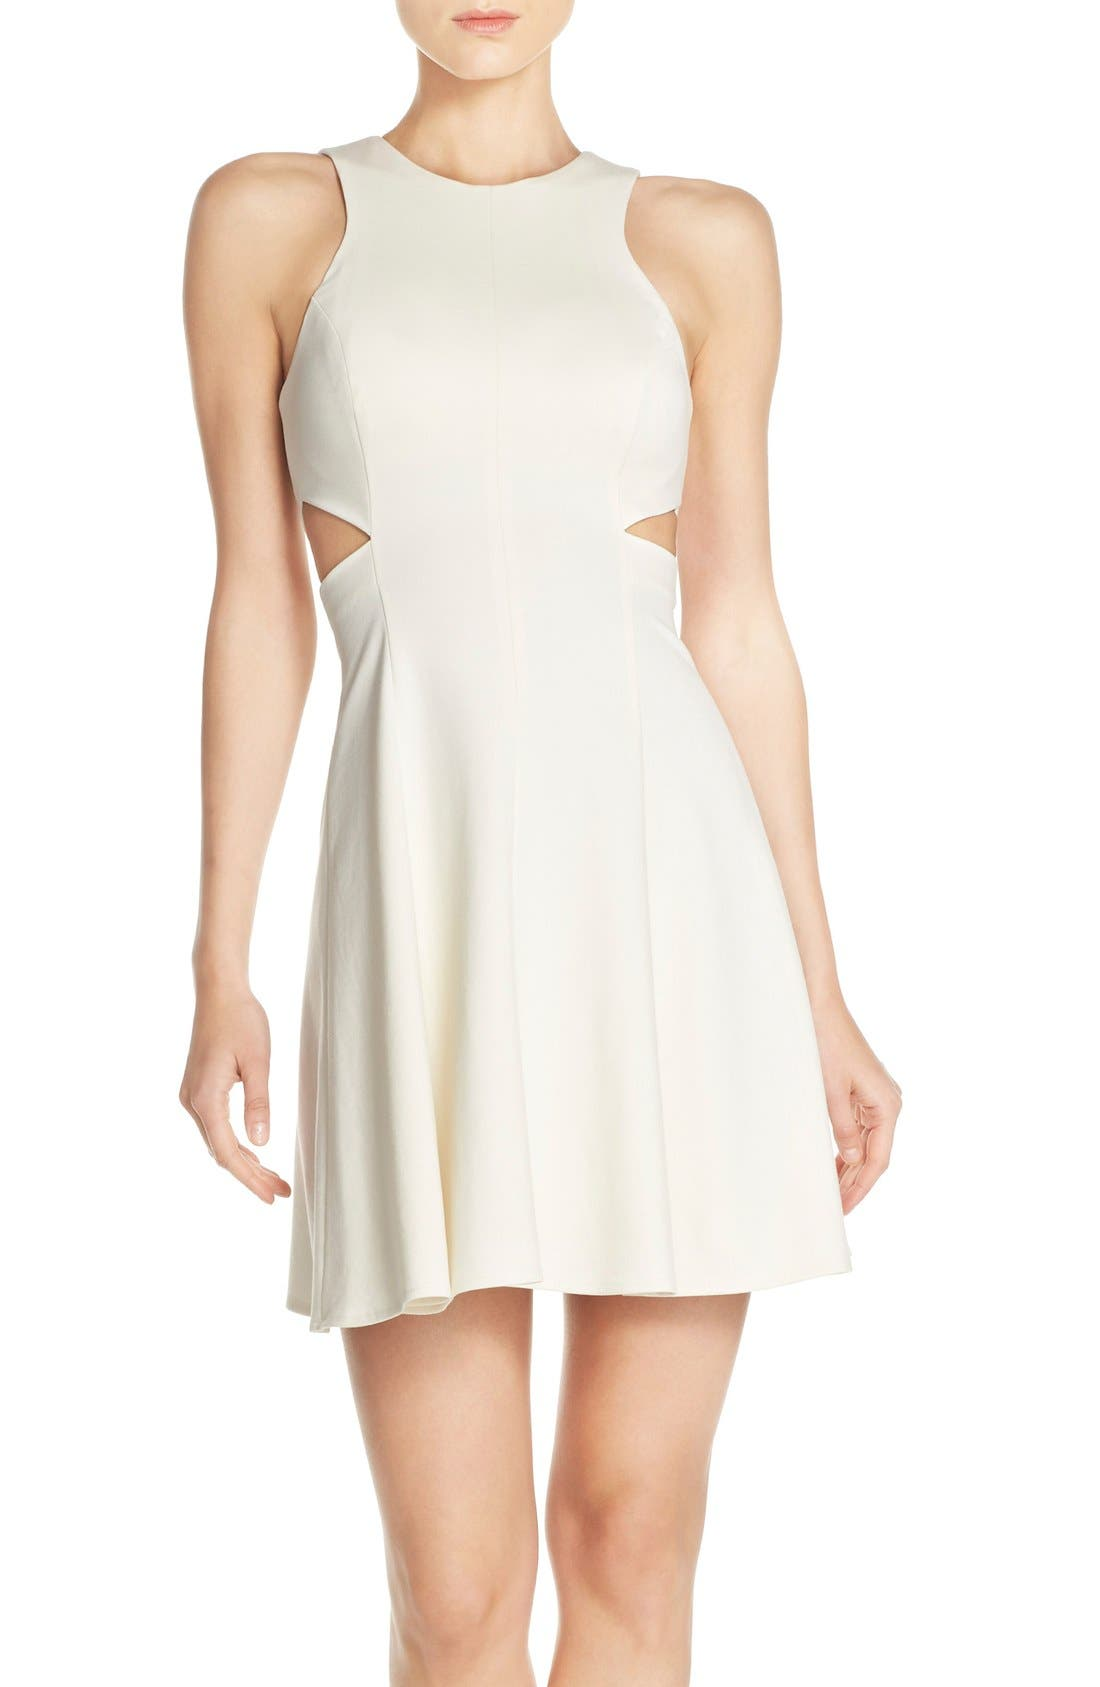 Alternate Image 1 Selected - Amanda Uprichard 'Juliet' Side Cutout Ponte Dress